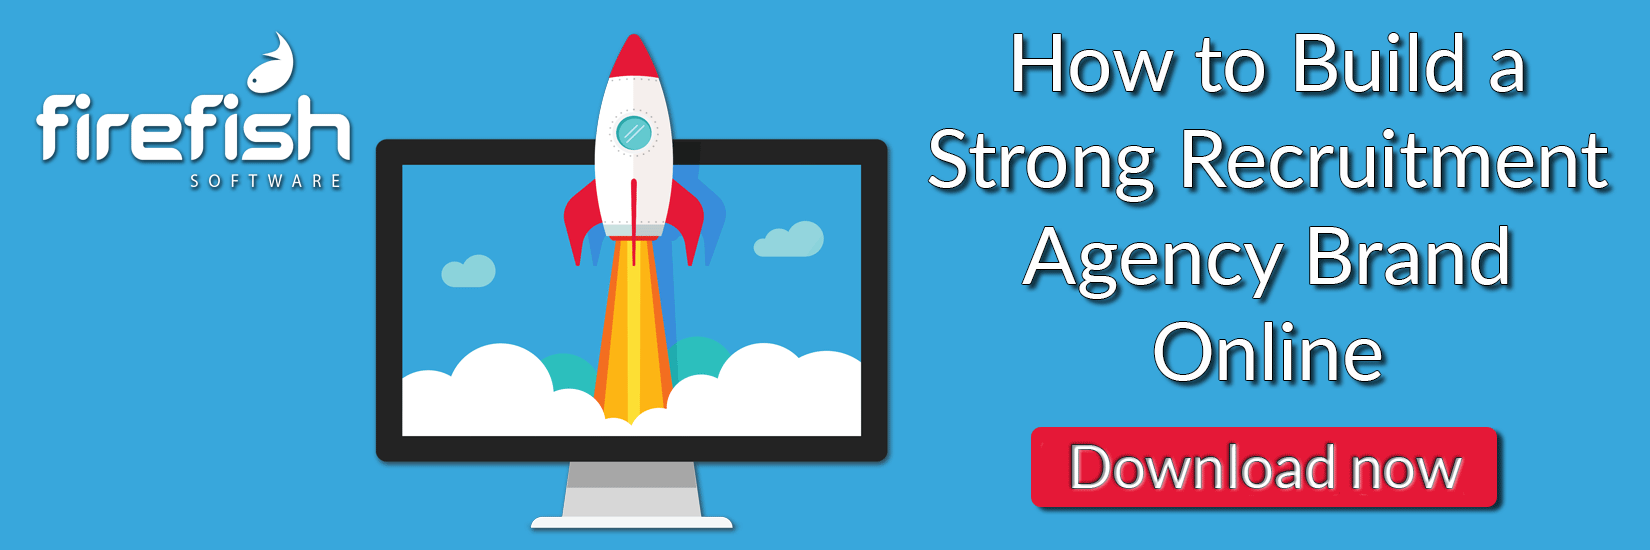 How to create a strong recruitment agency brand online eBook